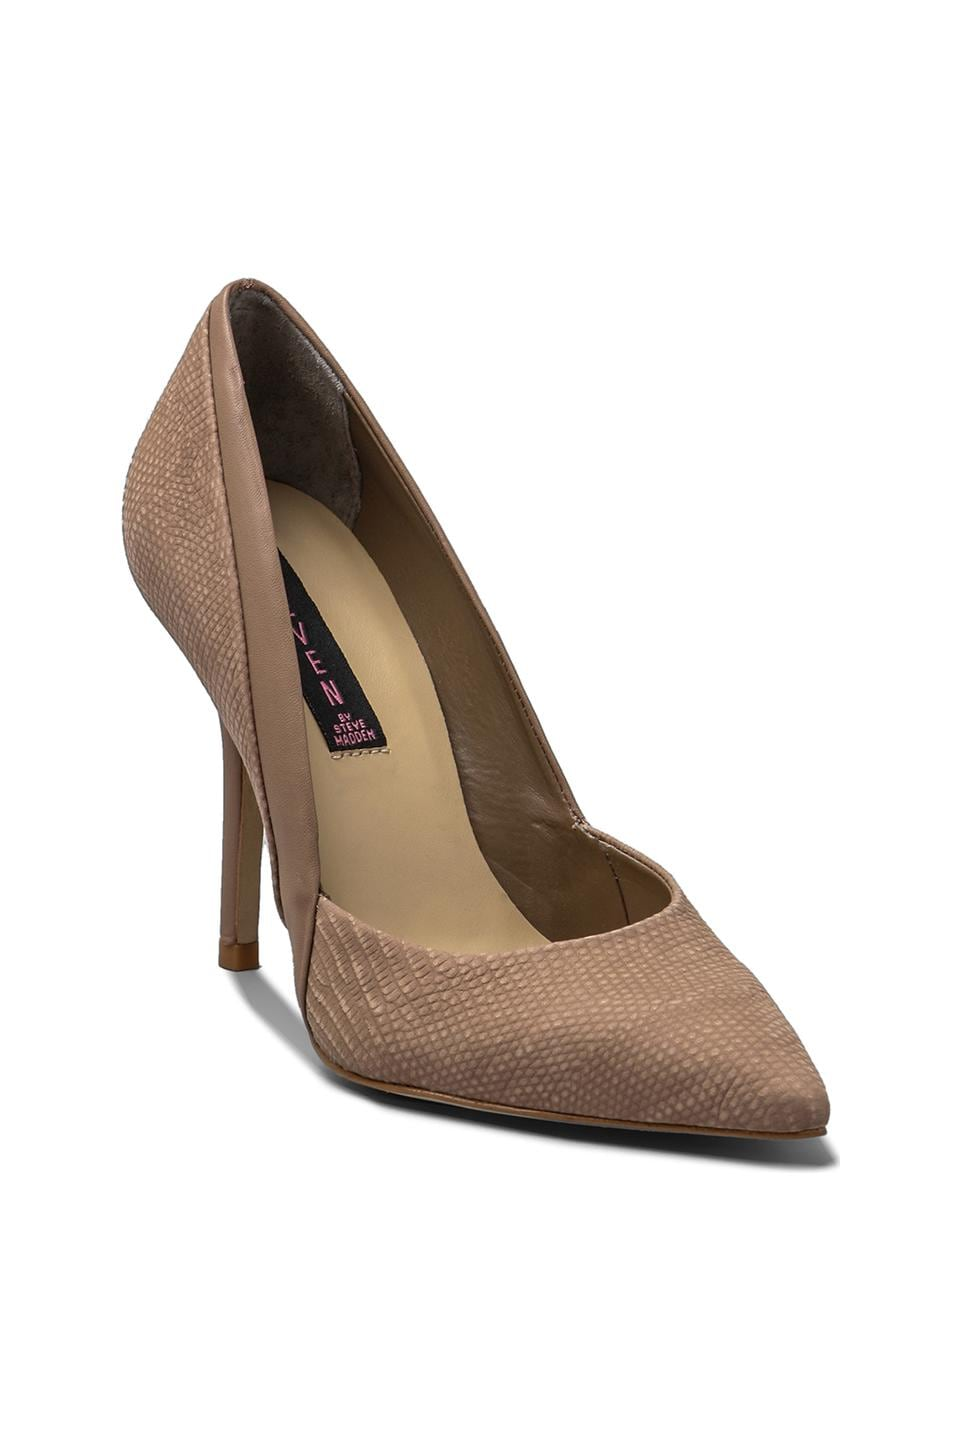 Steven Akcess Pump in Taupe Nubuck